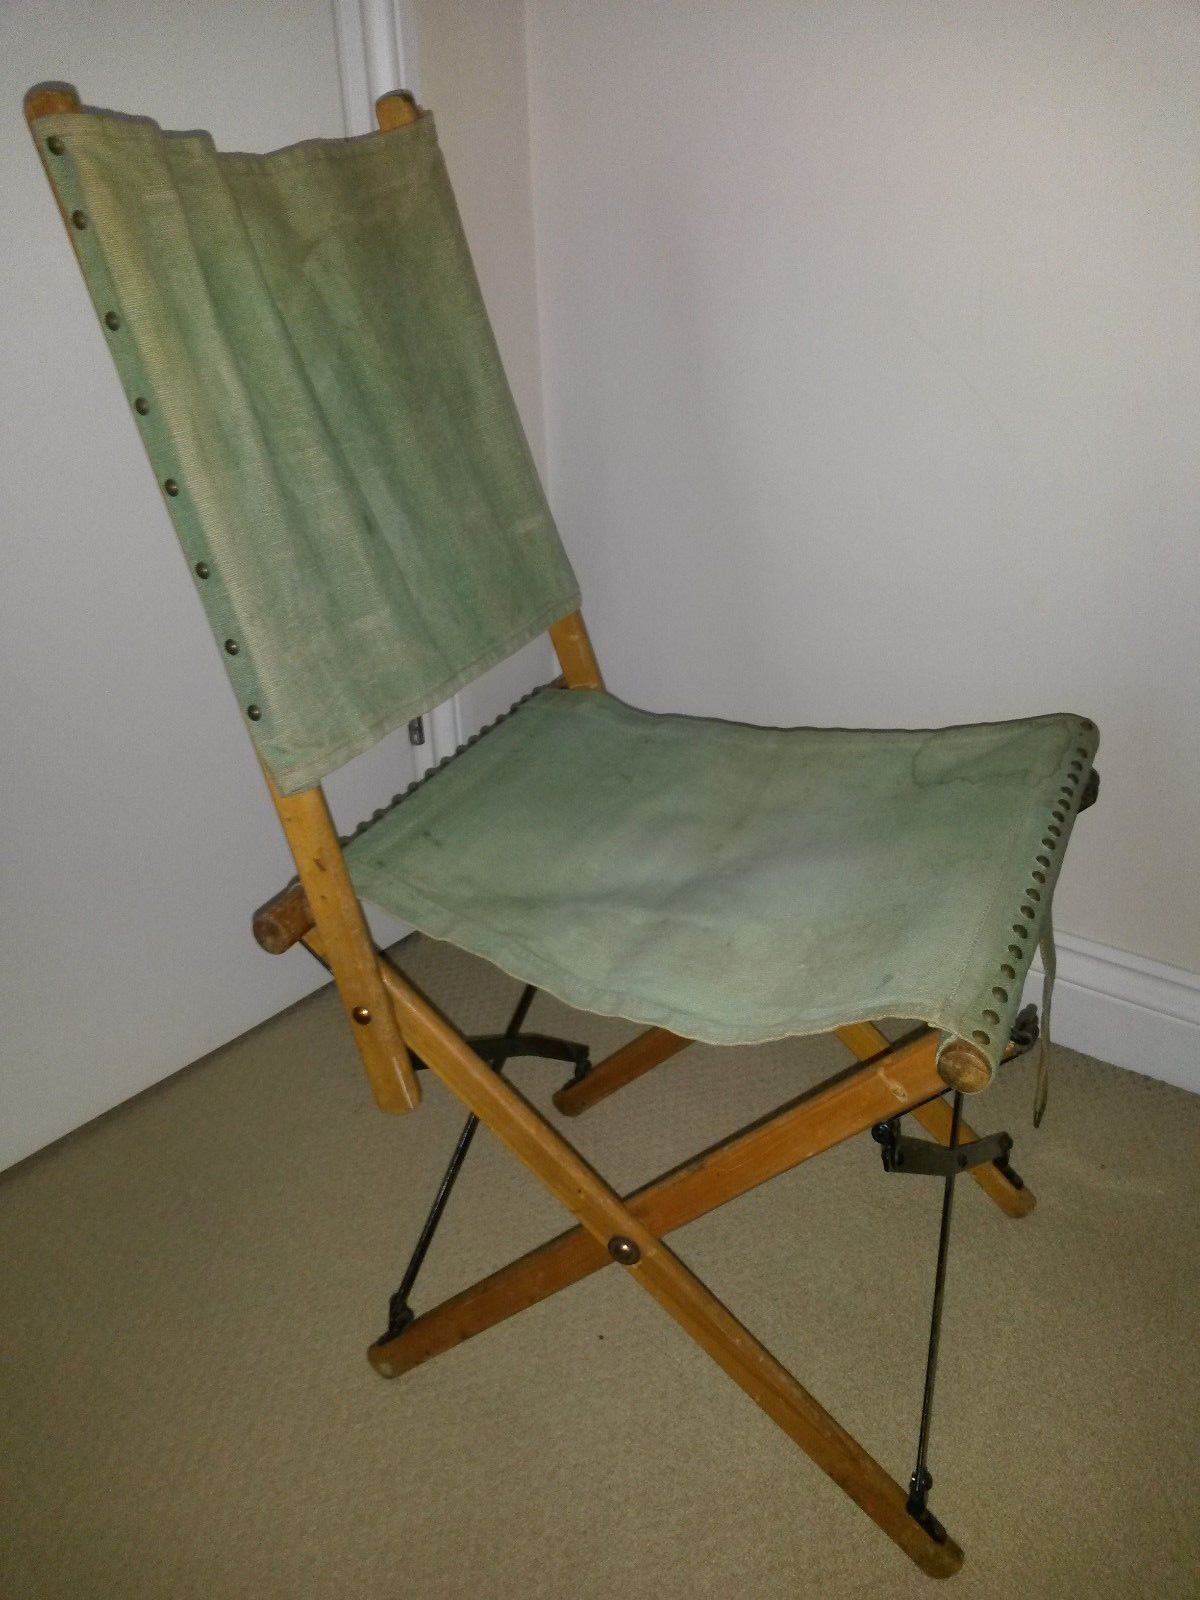 British Army Officeru0027s Folding Chair. A Name Was Written On The Back Which  Has Been